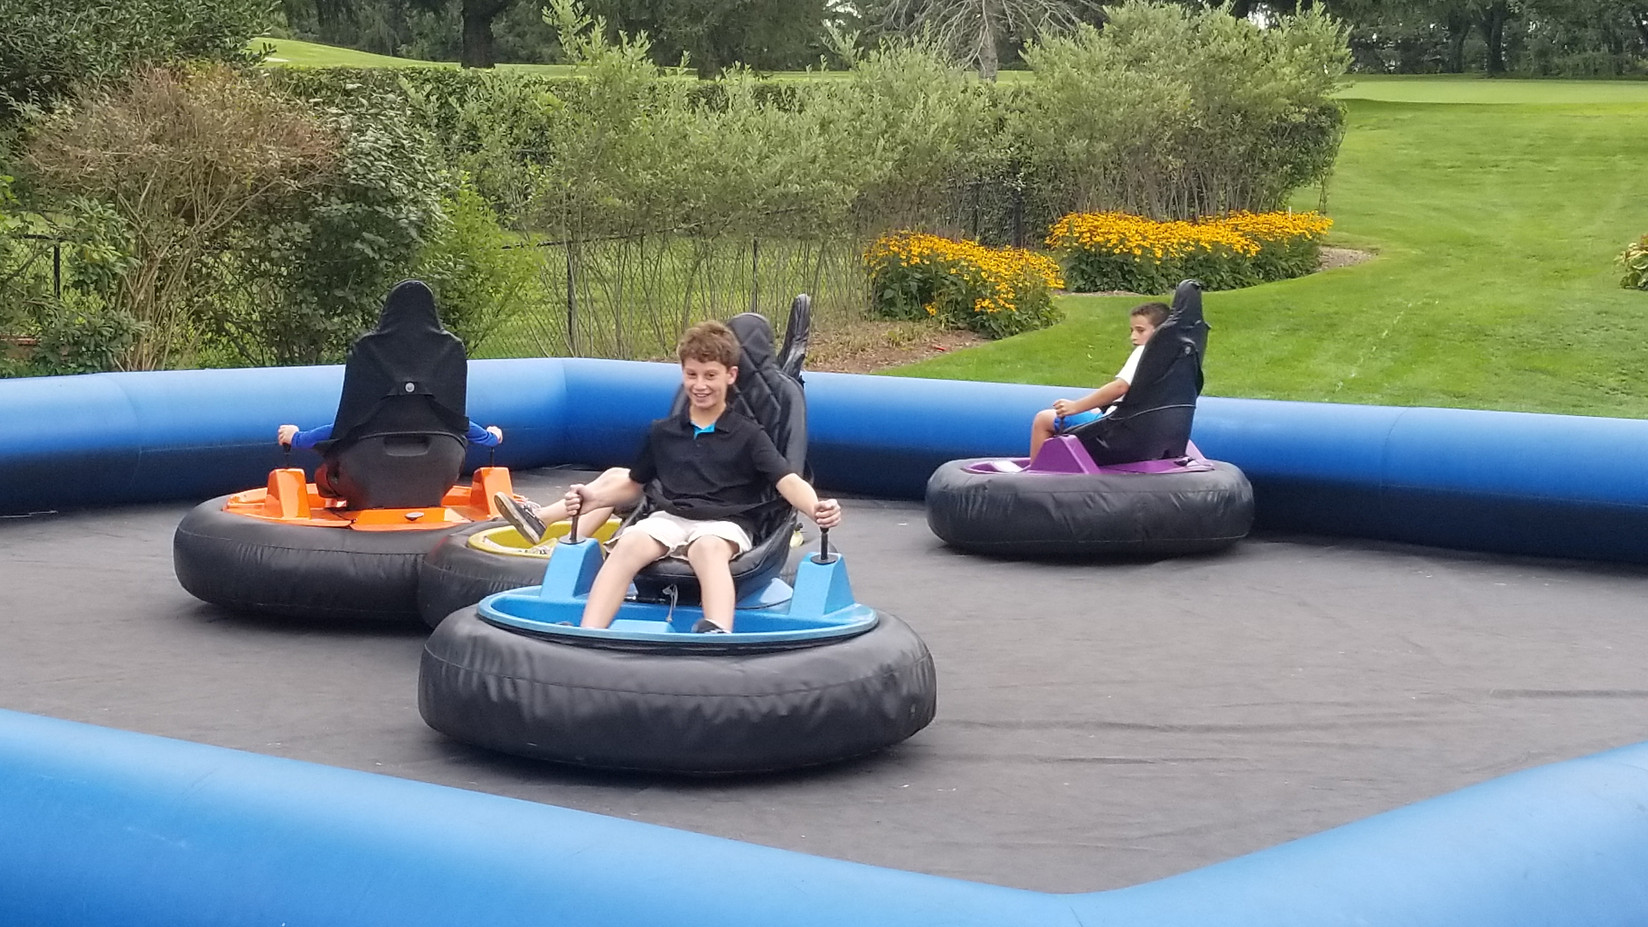 Kids-At-Bumper-Cars-For-Event.jpg